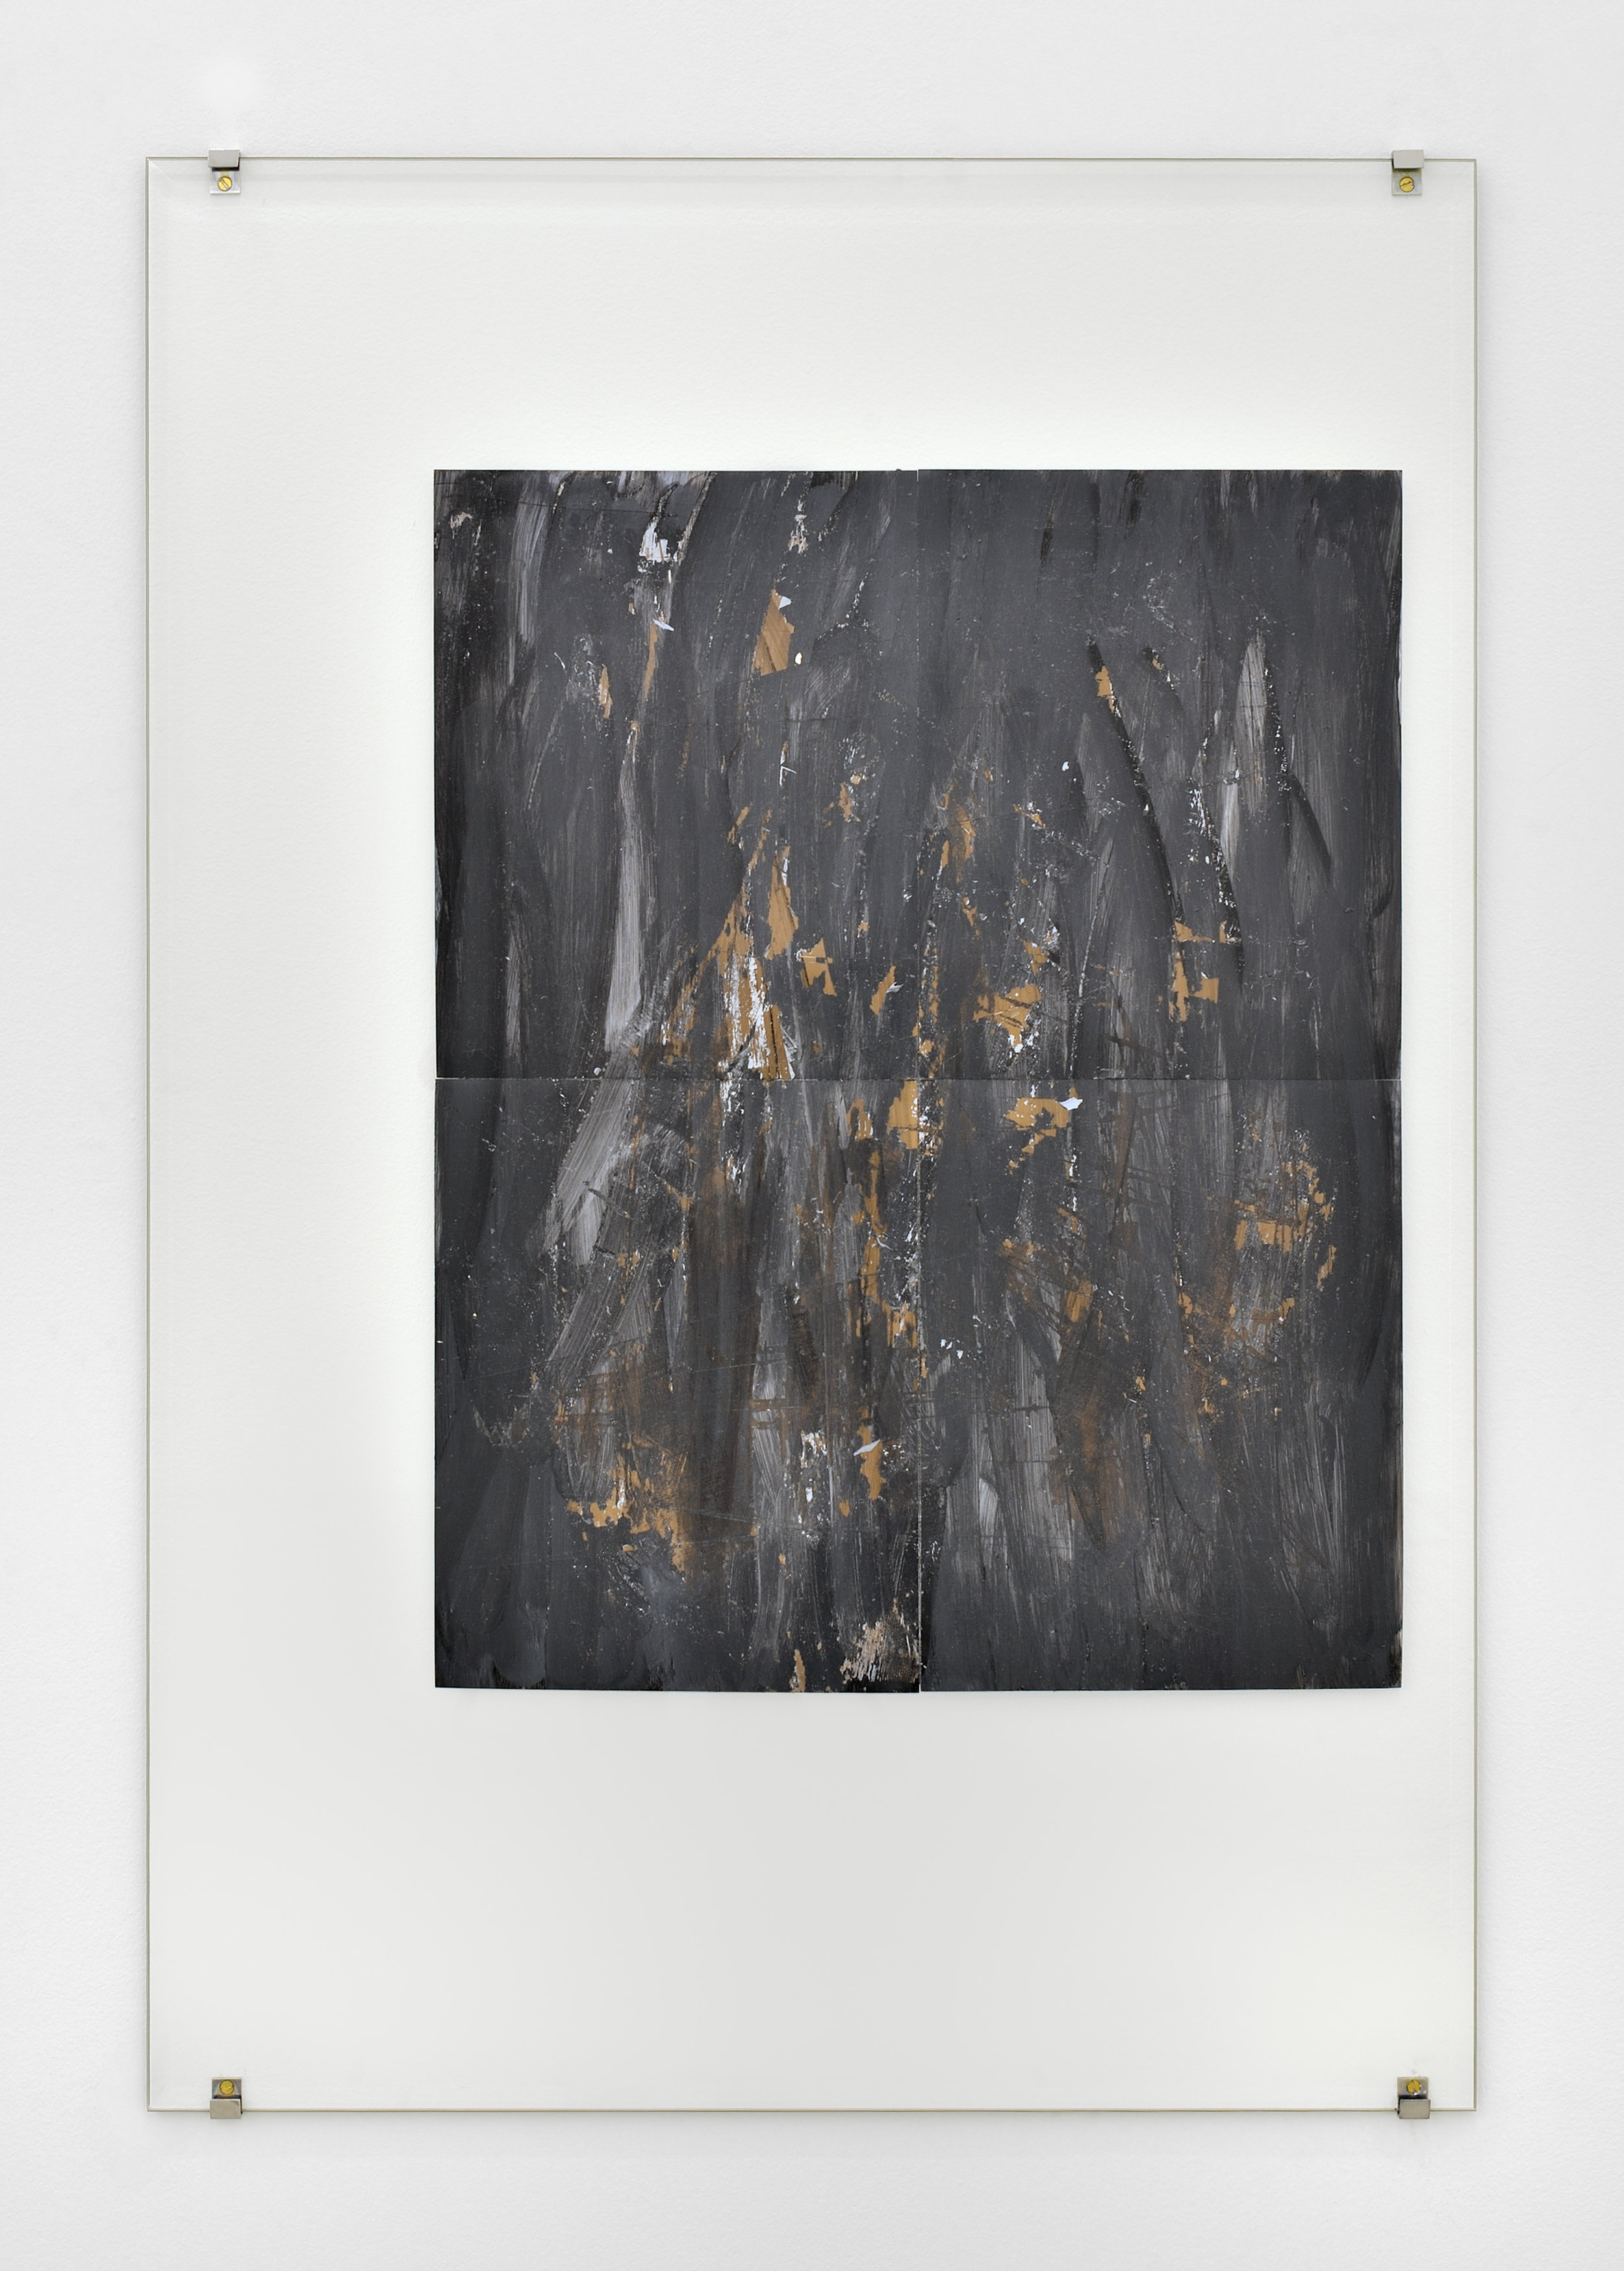 Jo-ey Tang, FTLID, 2013 glass, shoe polish, photographic paper 98 x 66 cm - 35 1/2 x 26 inches